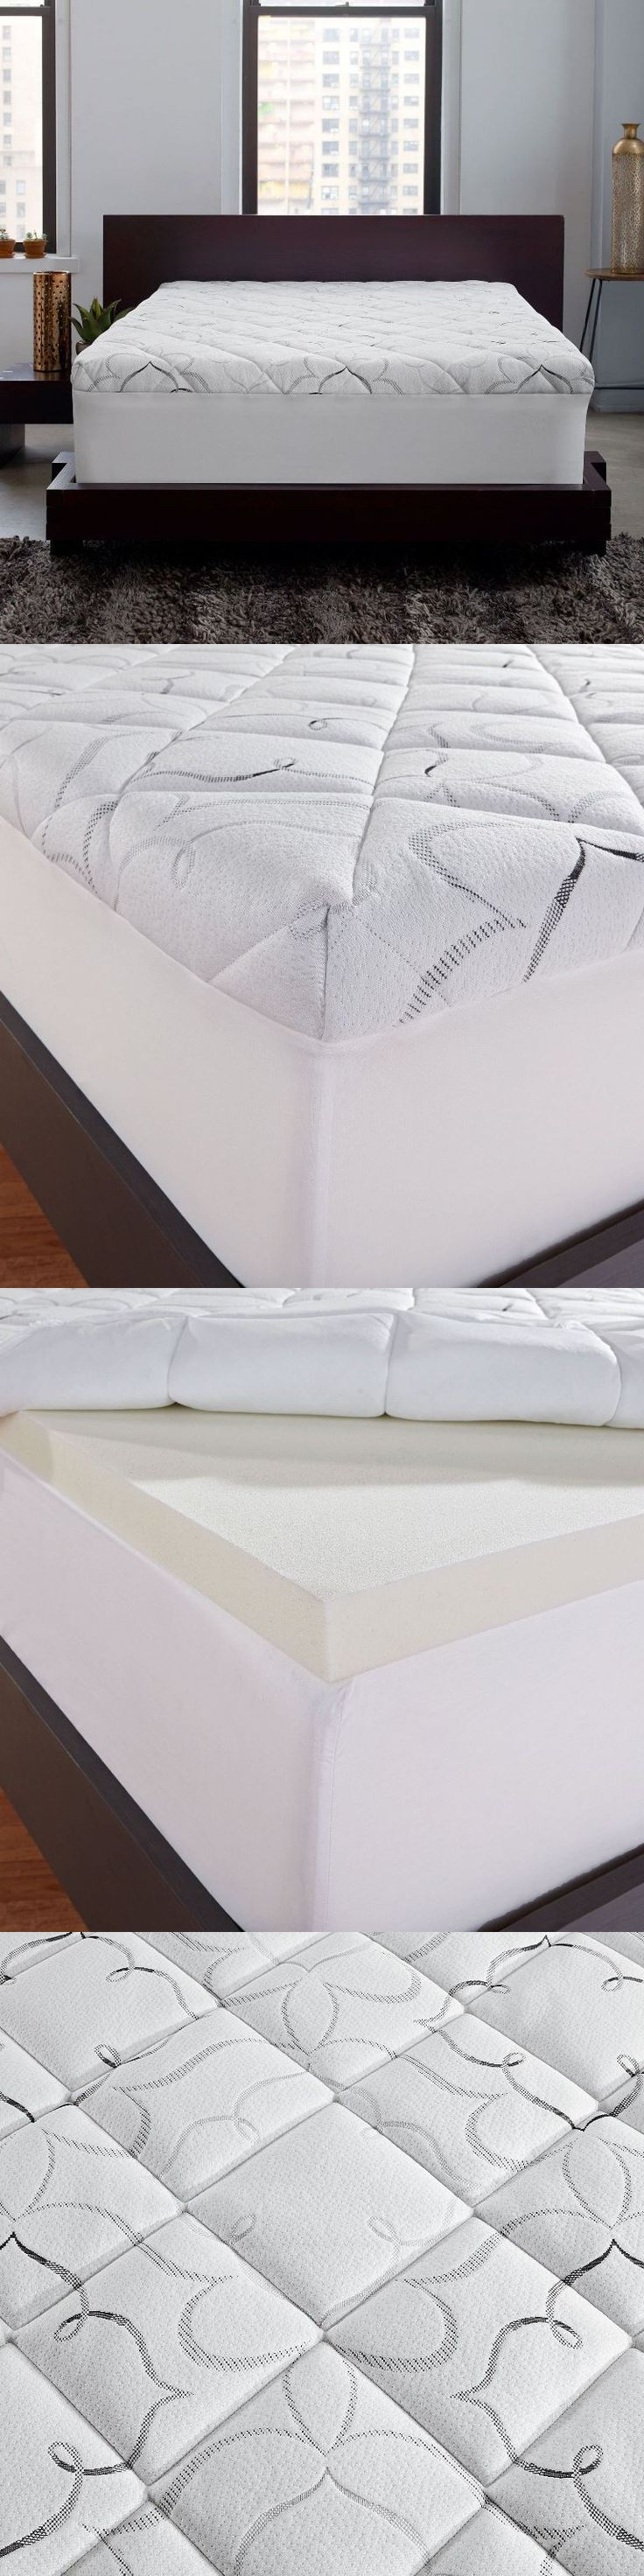 Mattress Pads and Feather Beds 175751: Instant-Pillow-Top-Memory-Foam-And-Fiber-Hybrid-Mattress-Topper Queen -> BUY IT NOW ONLY: $164.95 on eBay!